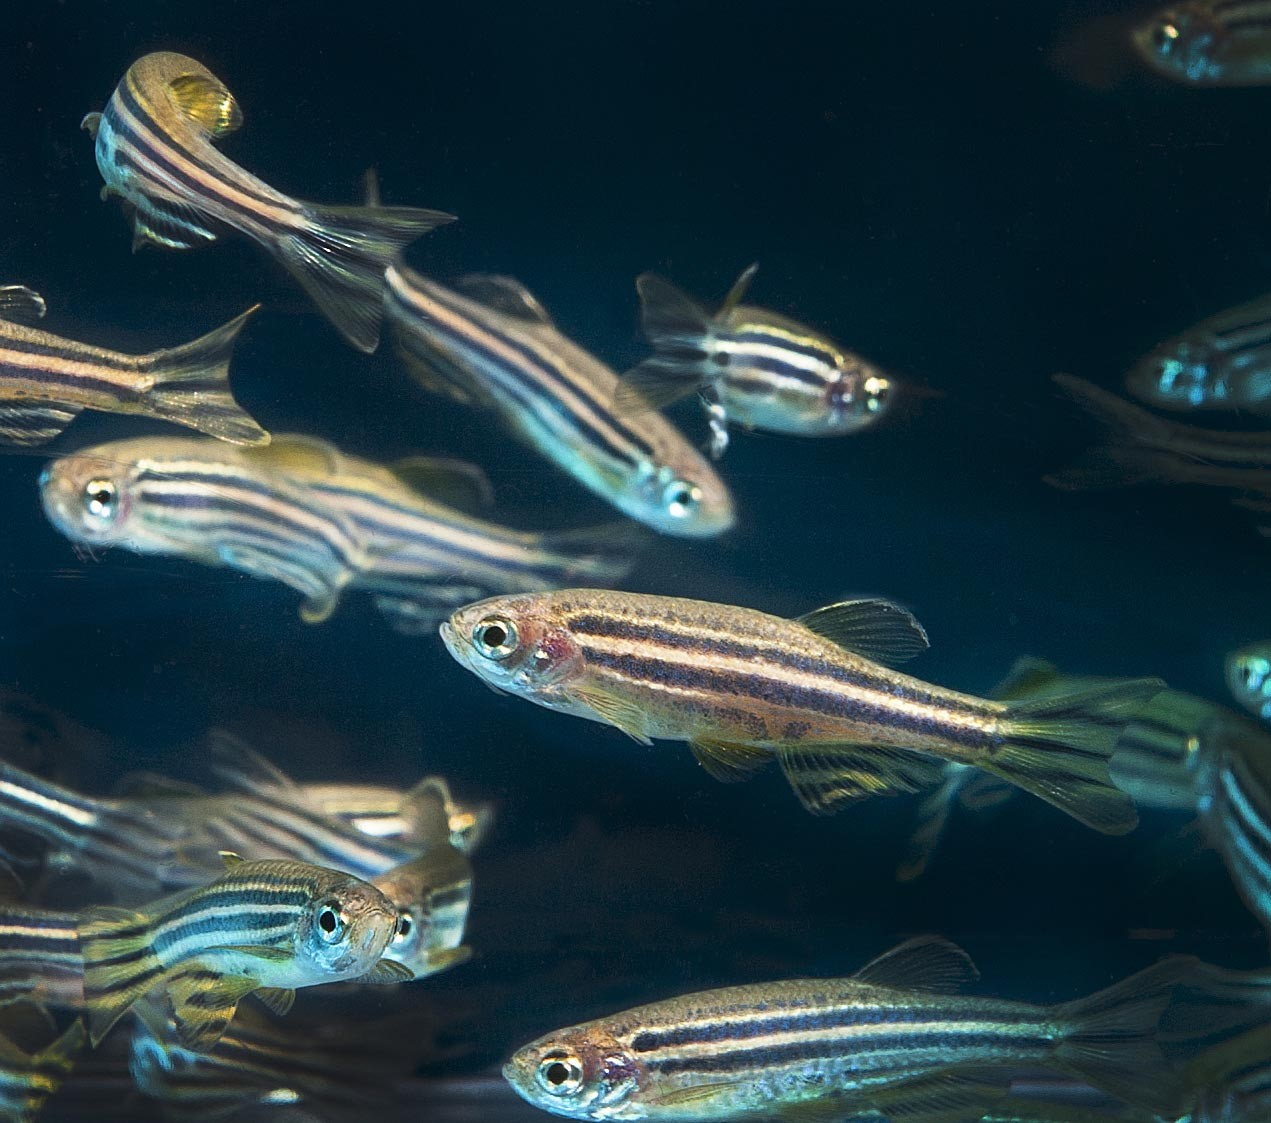 Bold Fish, Shy Fish: What's in Their Brains?